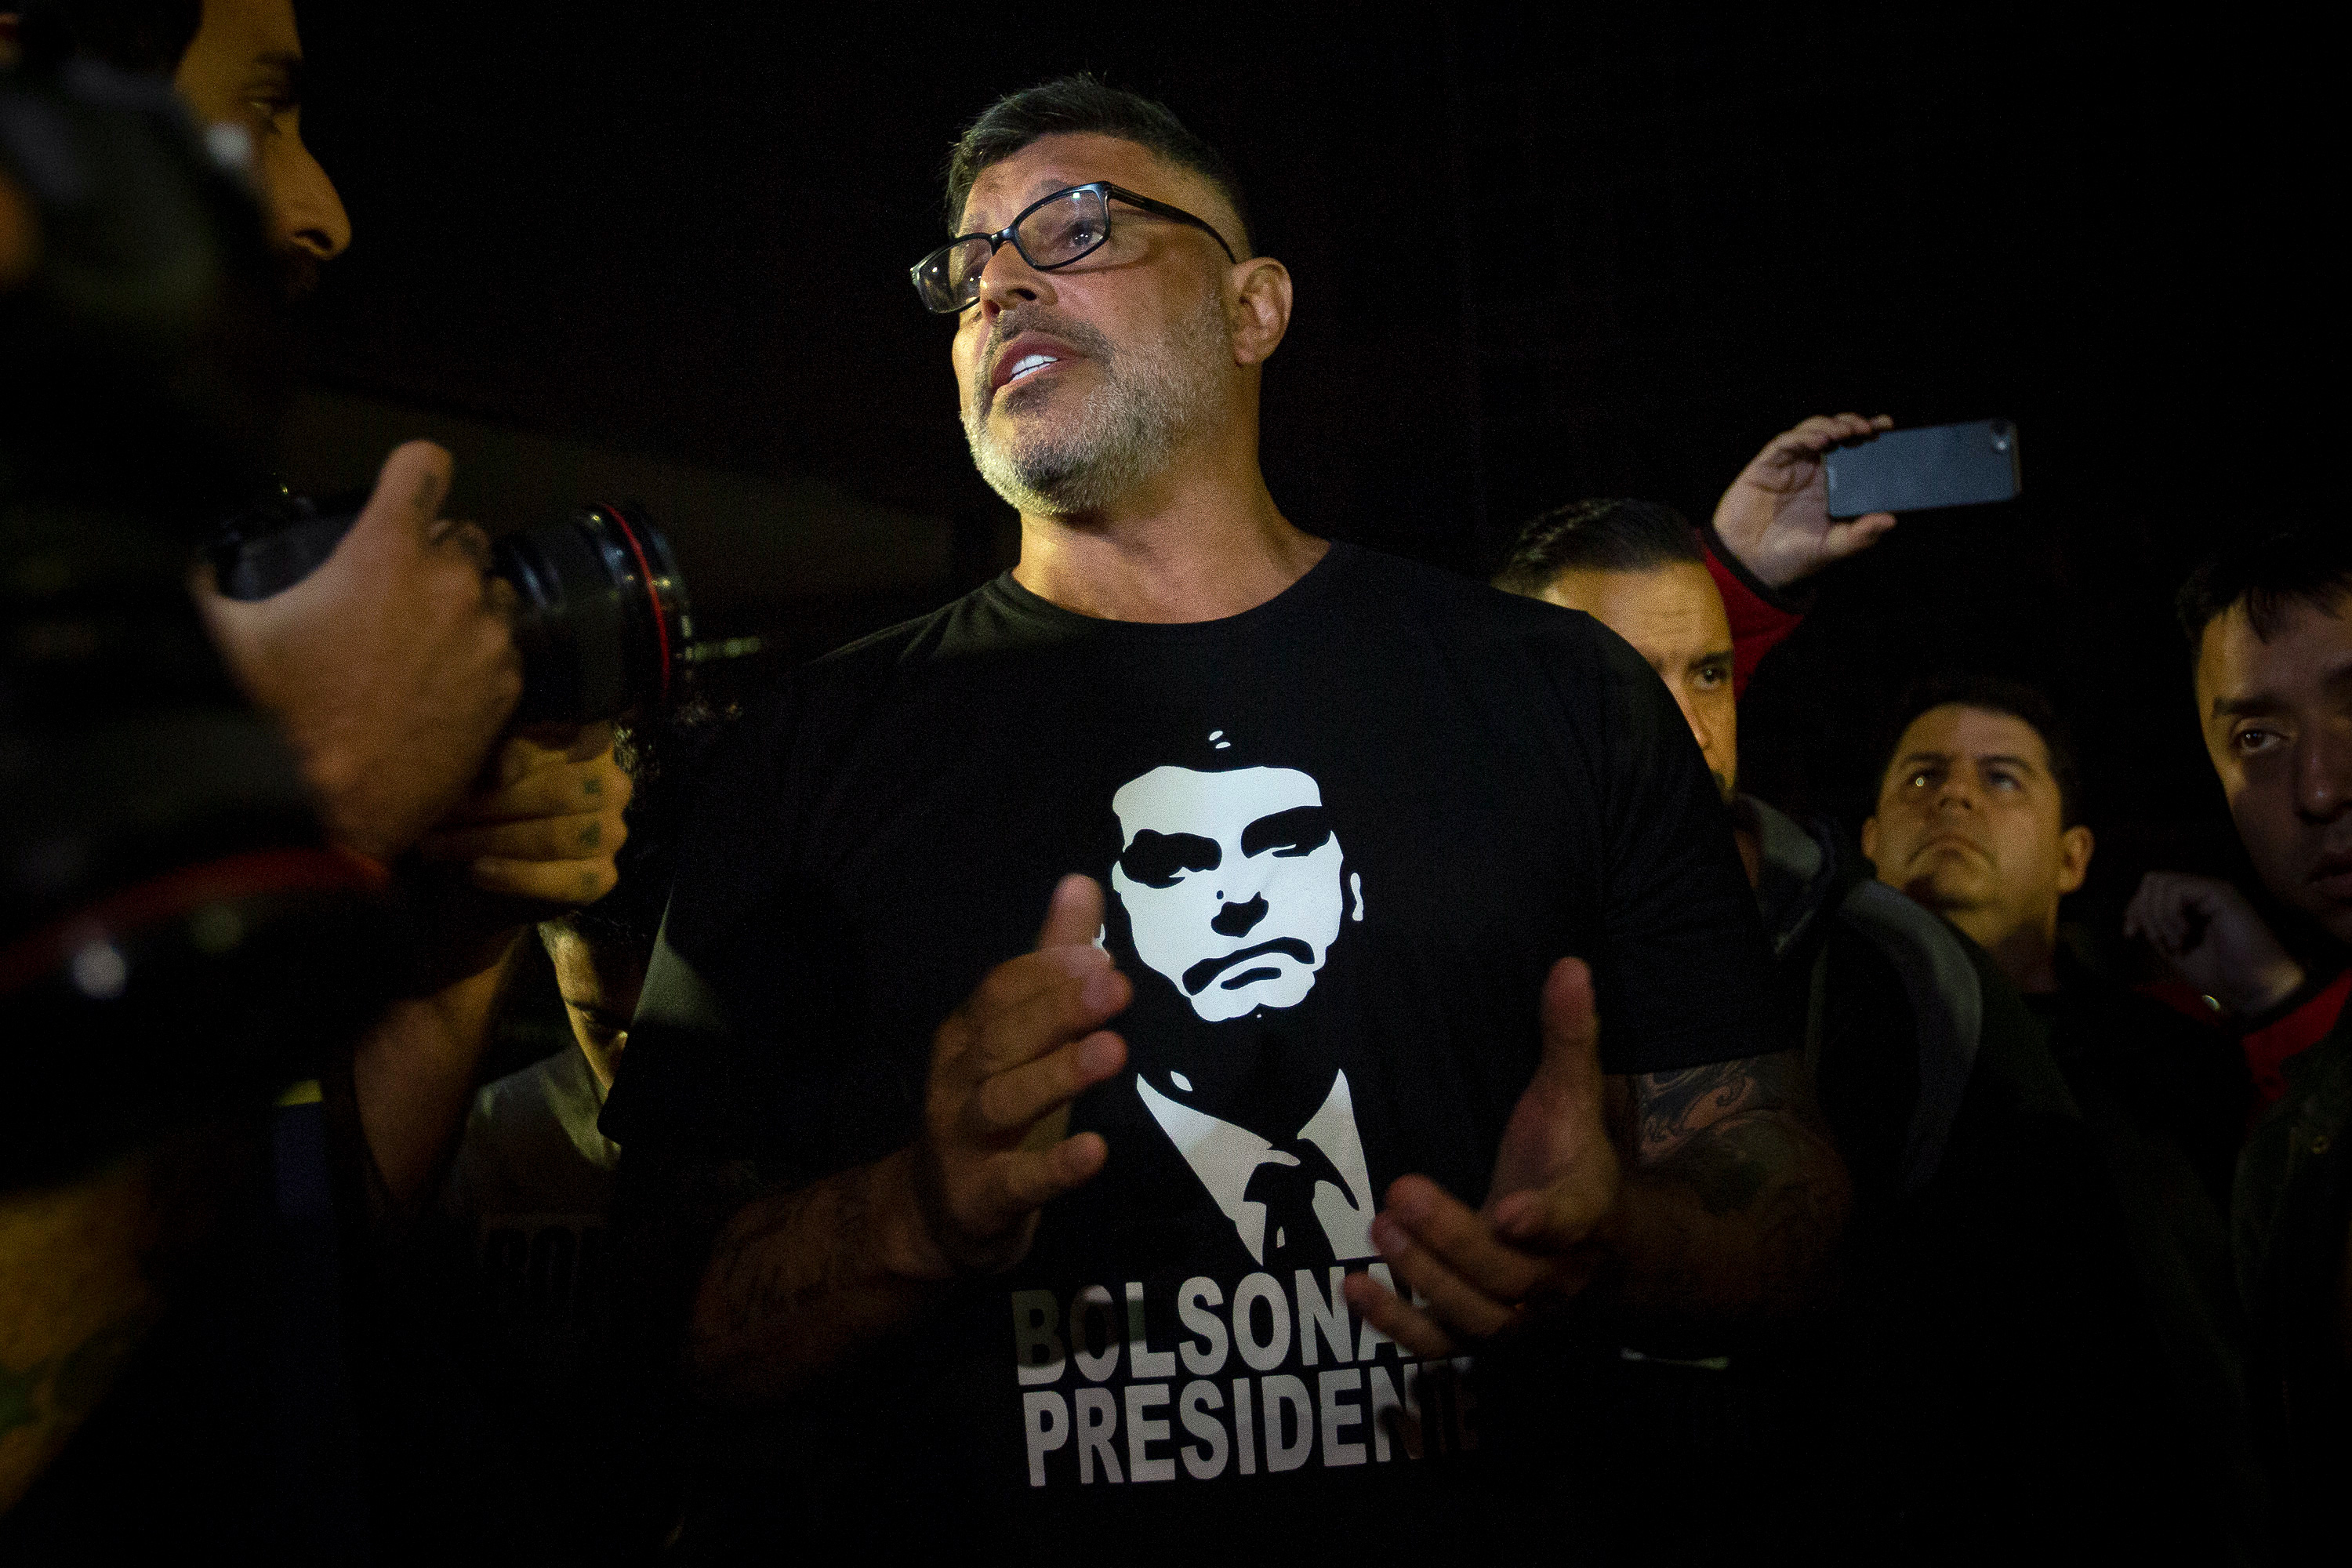 SP - Sao Paulo - 07/09/2018 - Jair Bolsonaro movement Albert Einstein - Candidate for Federal Deputy for the PSL of Rio de Janeiro Alexandre Frota, during a prayer vigil in support of Jair Bolsonaro in front of Albert Einstein Hospital at night this Friday 07, Bolsonaro, who was attacked yesterday afternoon in Juiz de Fora, Minas Gerais, while on schedule, was transferred to Sao Paulo this morning to continue the treatment of recovery, his condition is considered serious but stable Photo: Suamy Beydoun / AGIF (via AP)